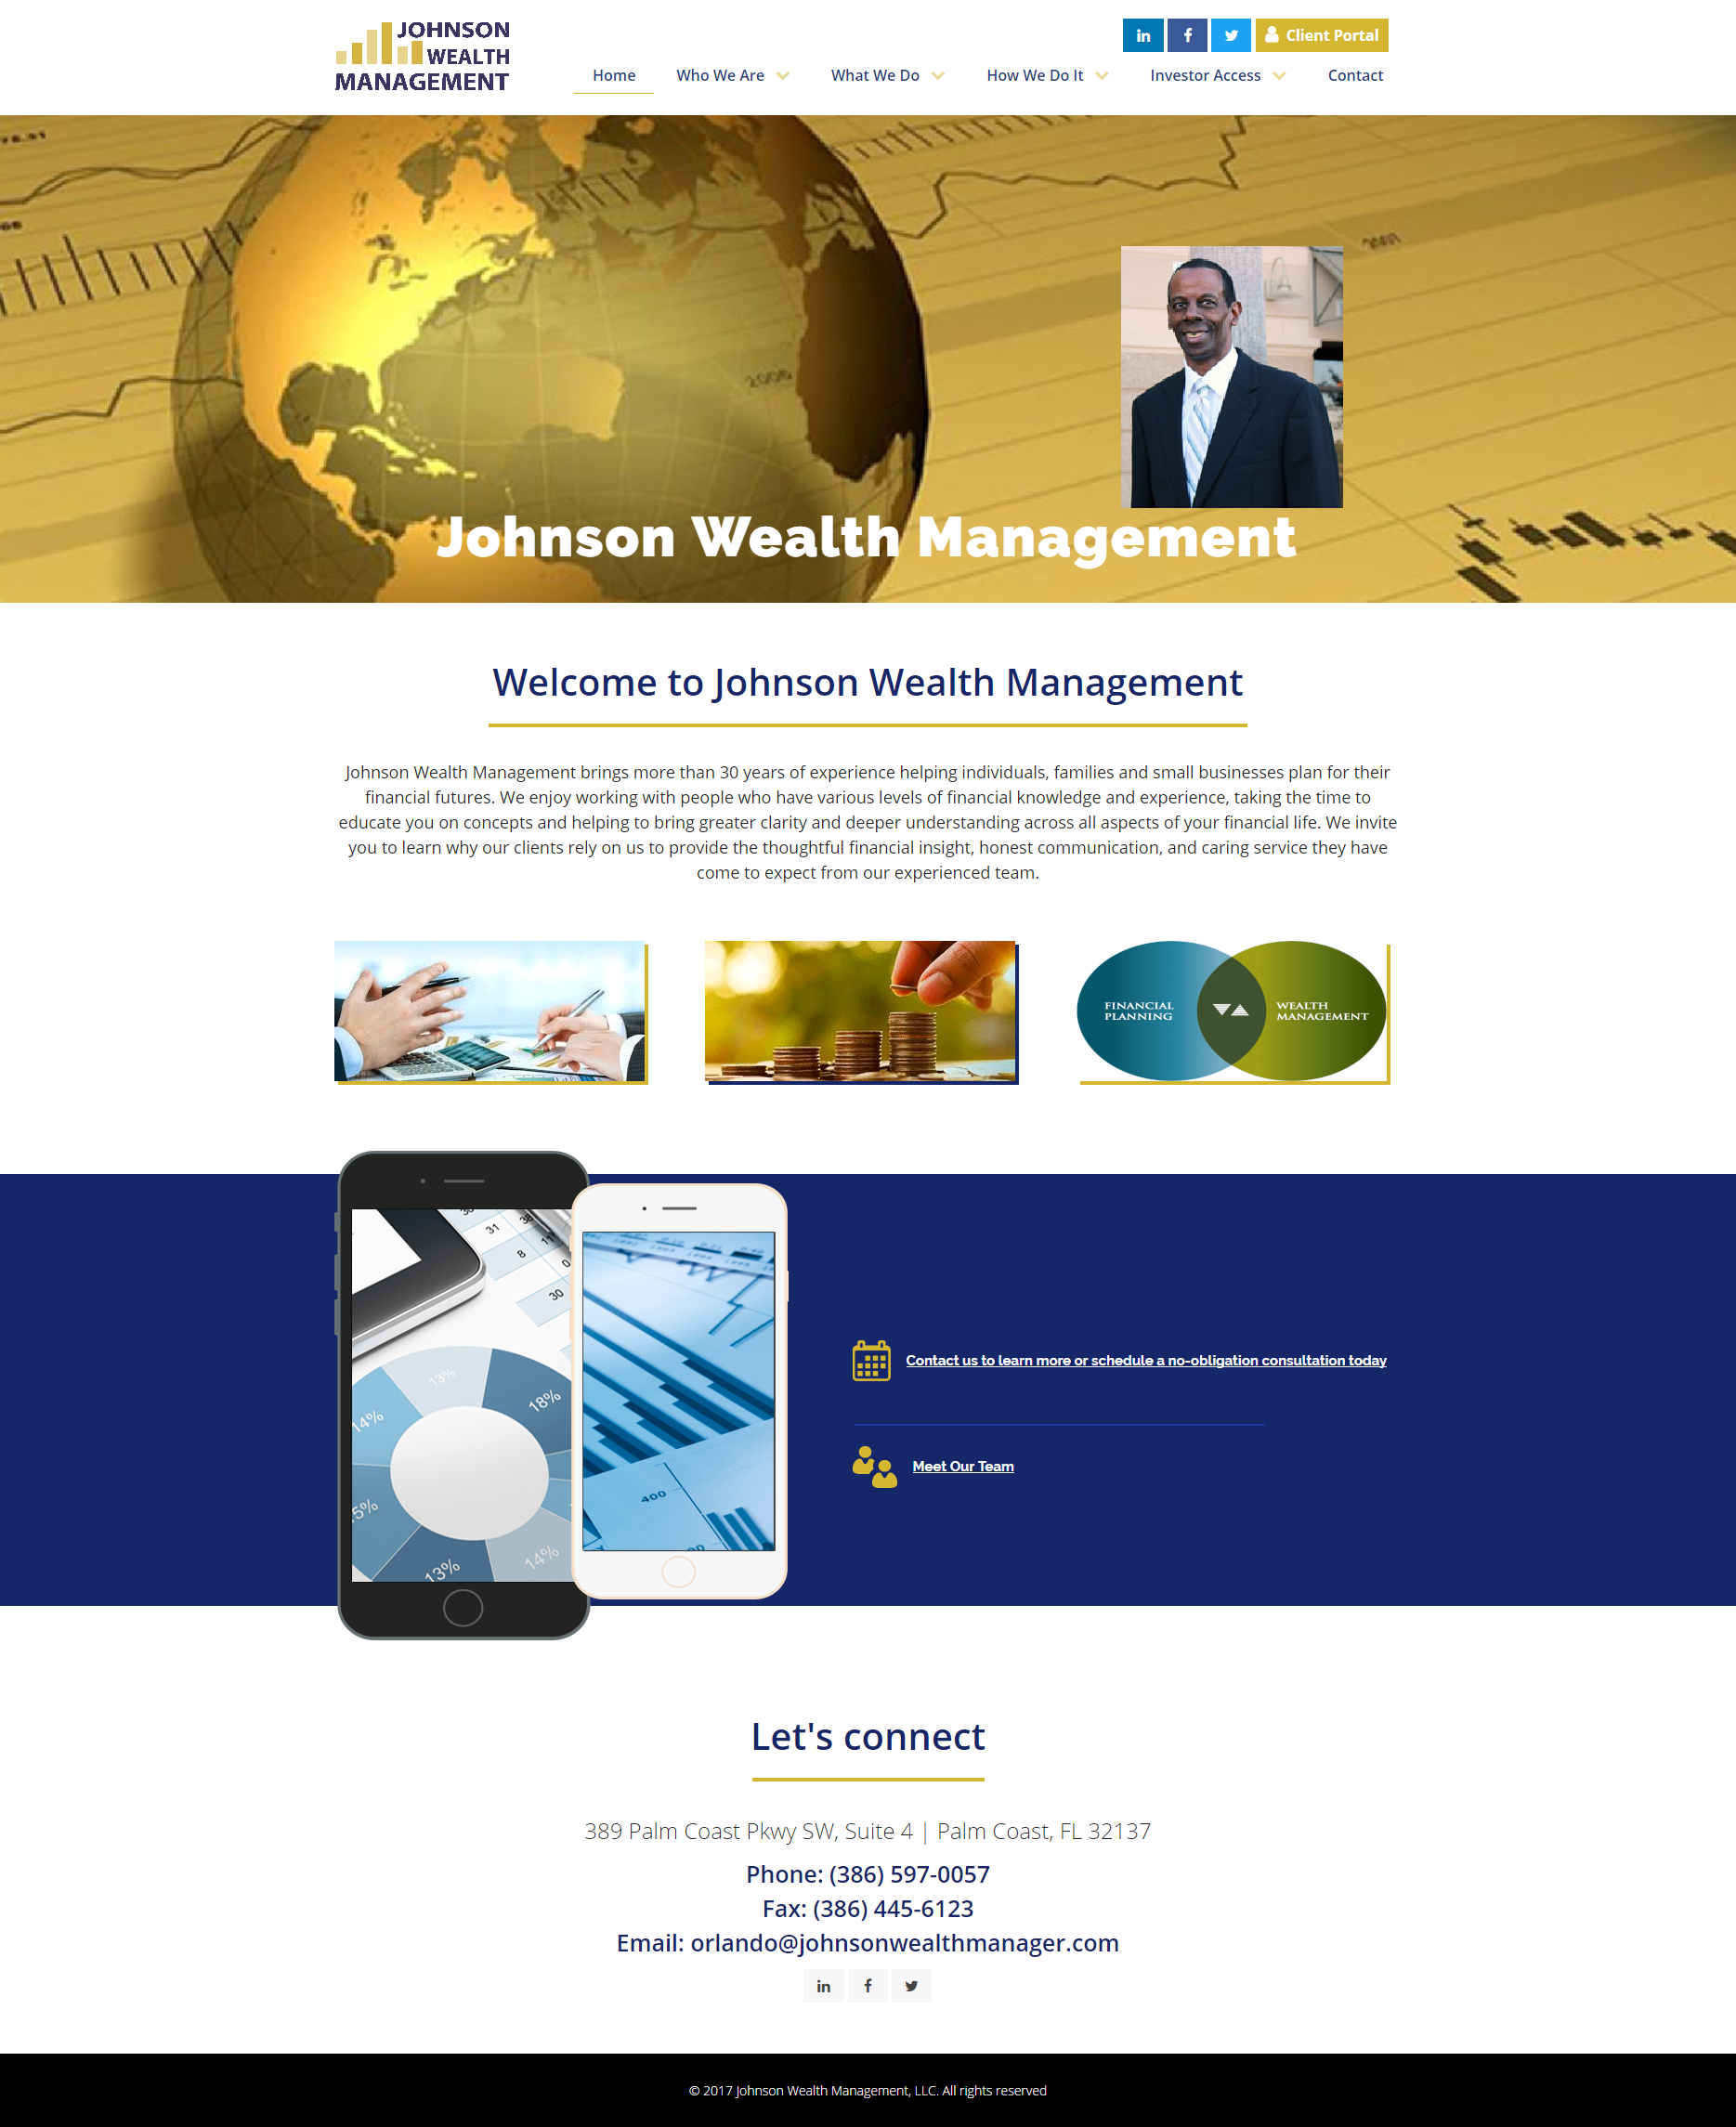 Johnson Wealth